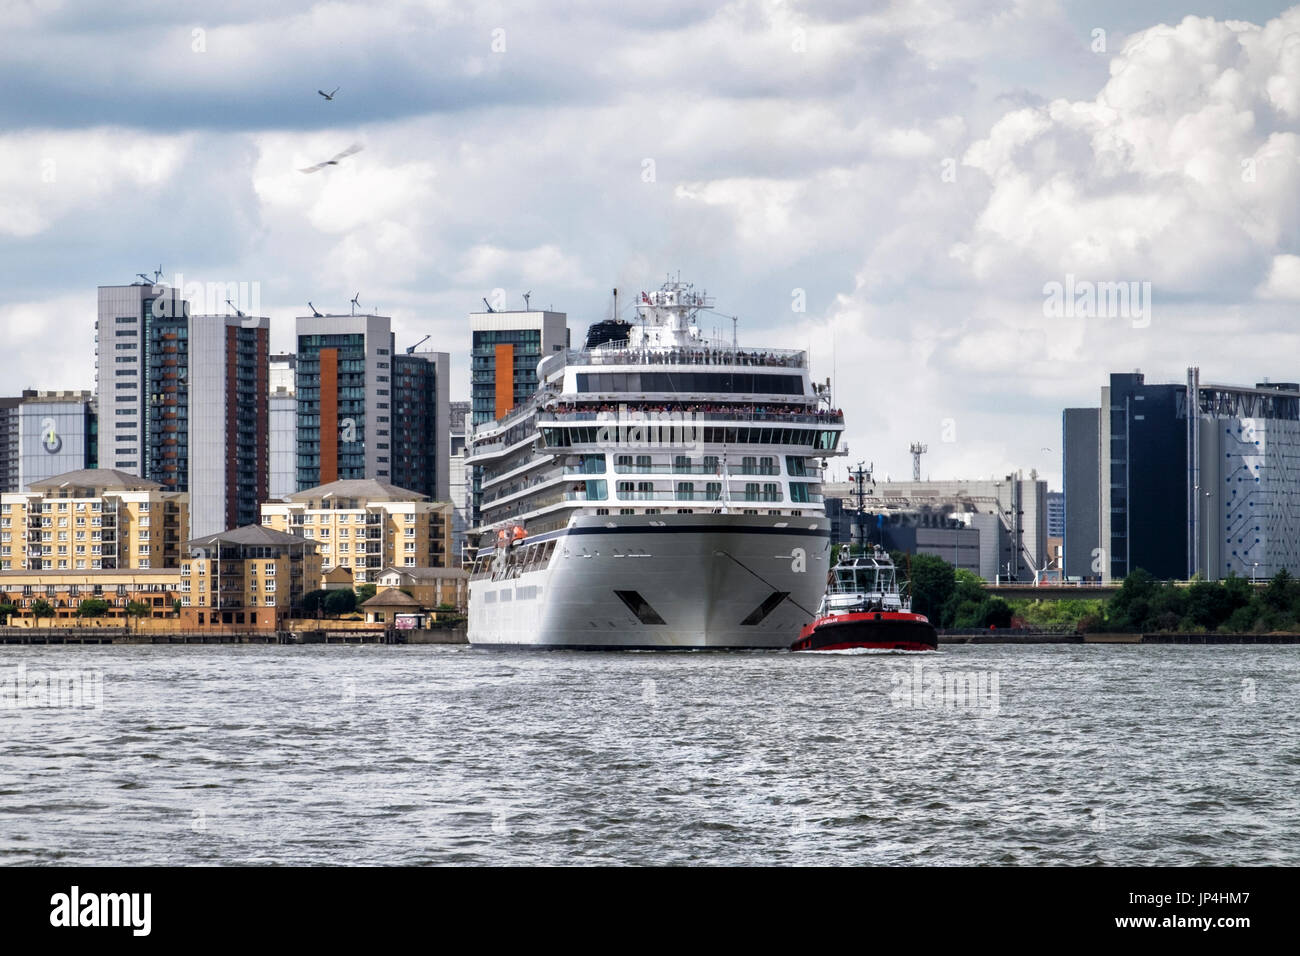 UK,London,MV Viking Sea cruise ship with people on deck as it leaves the city. Cruise liner leaves London. River Thames - Stock Image